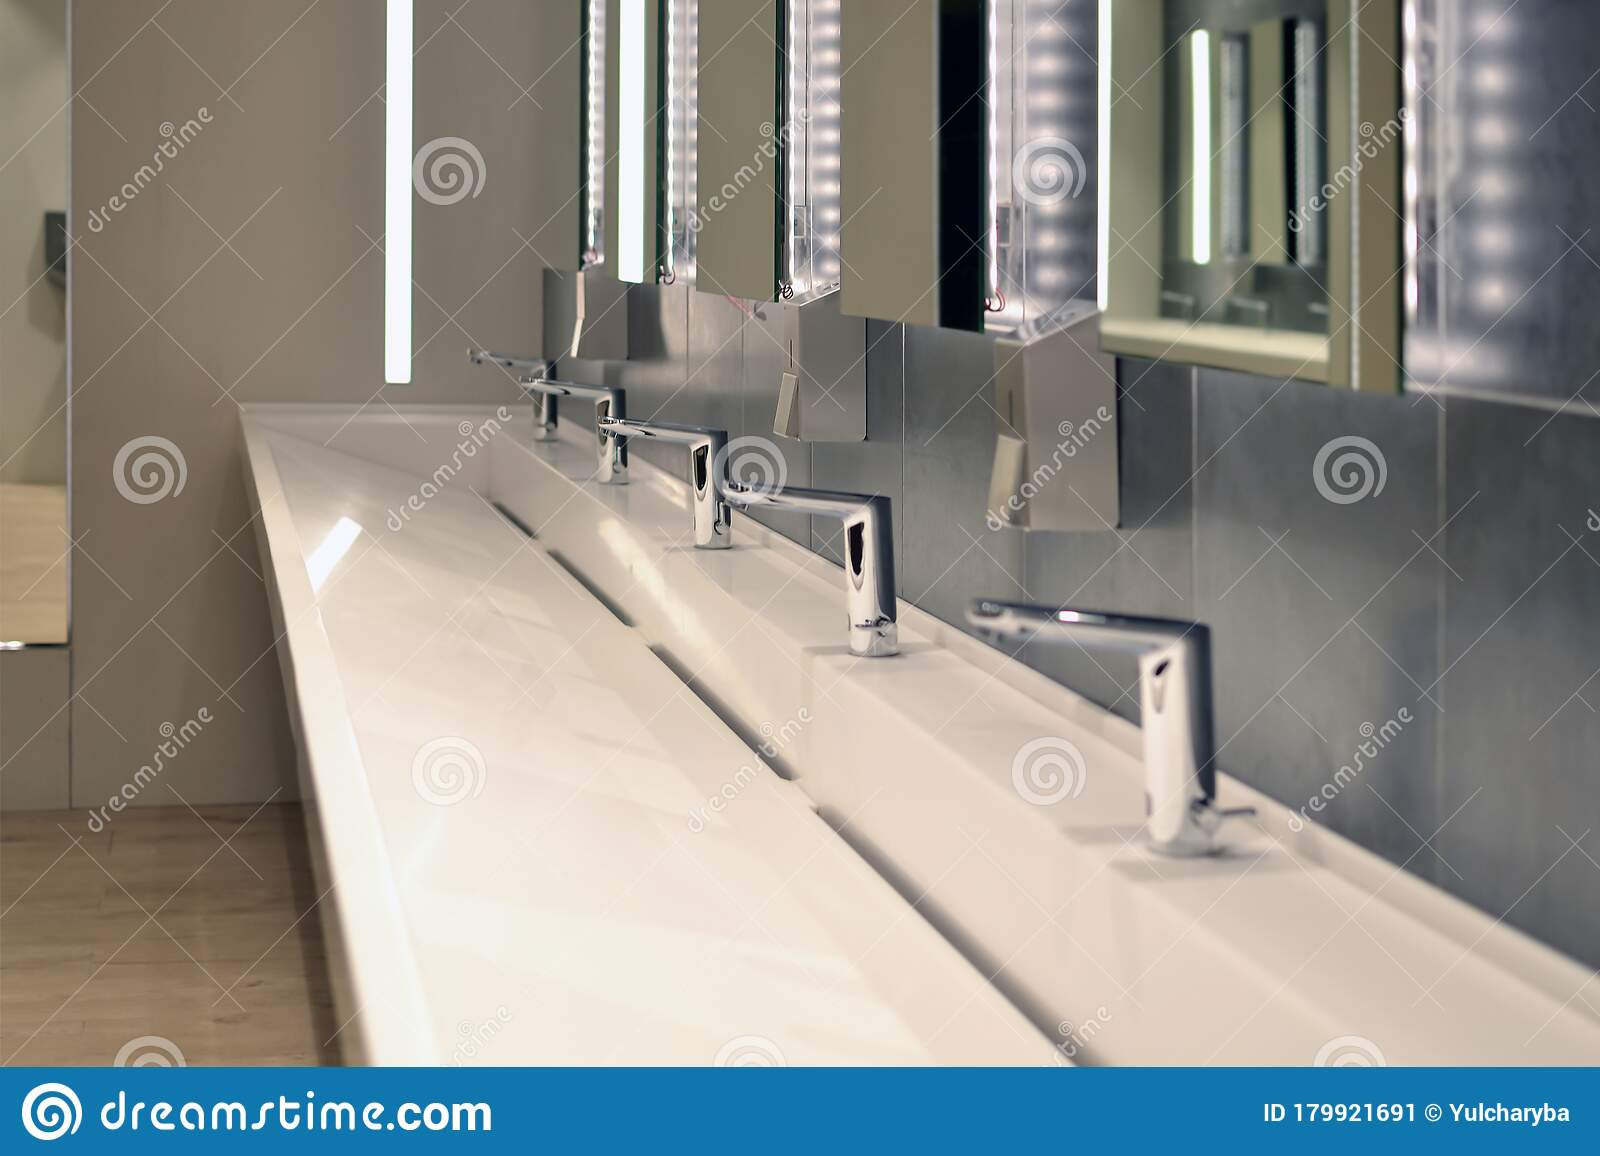 561 Commercial Washroom Photos Free Royalty Free Stock Photos From Dreamstime